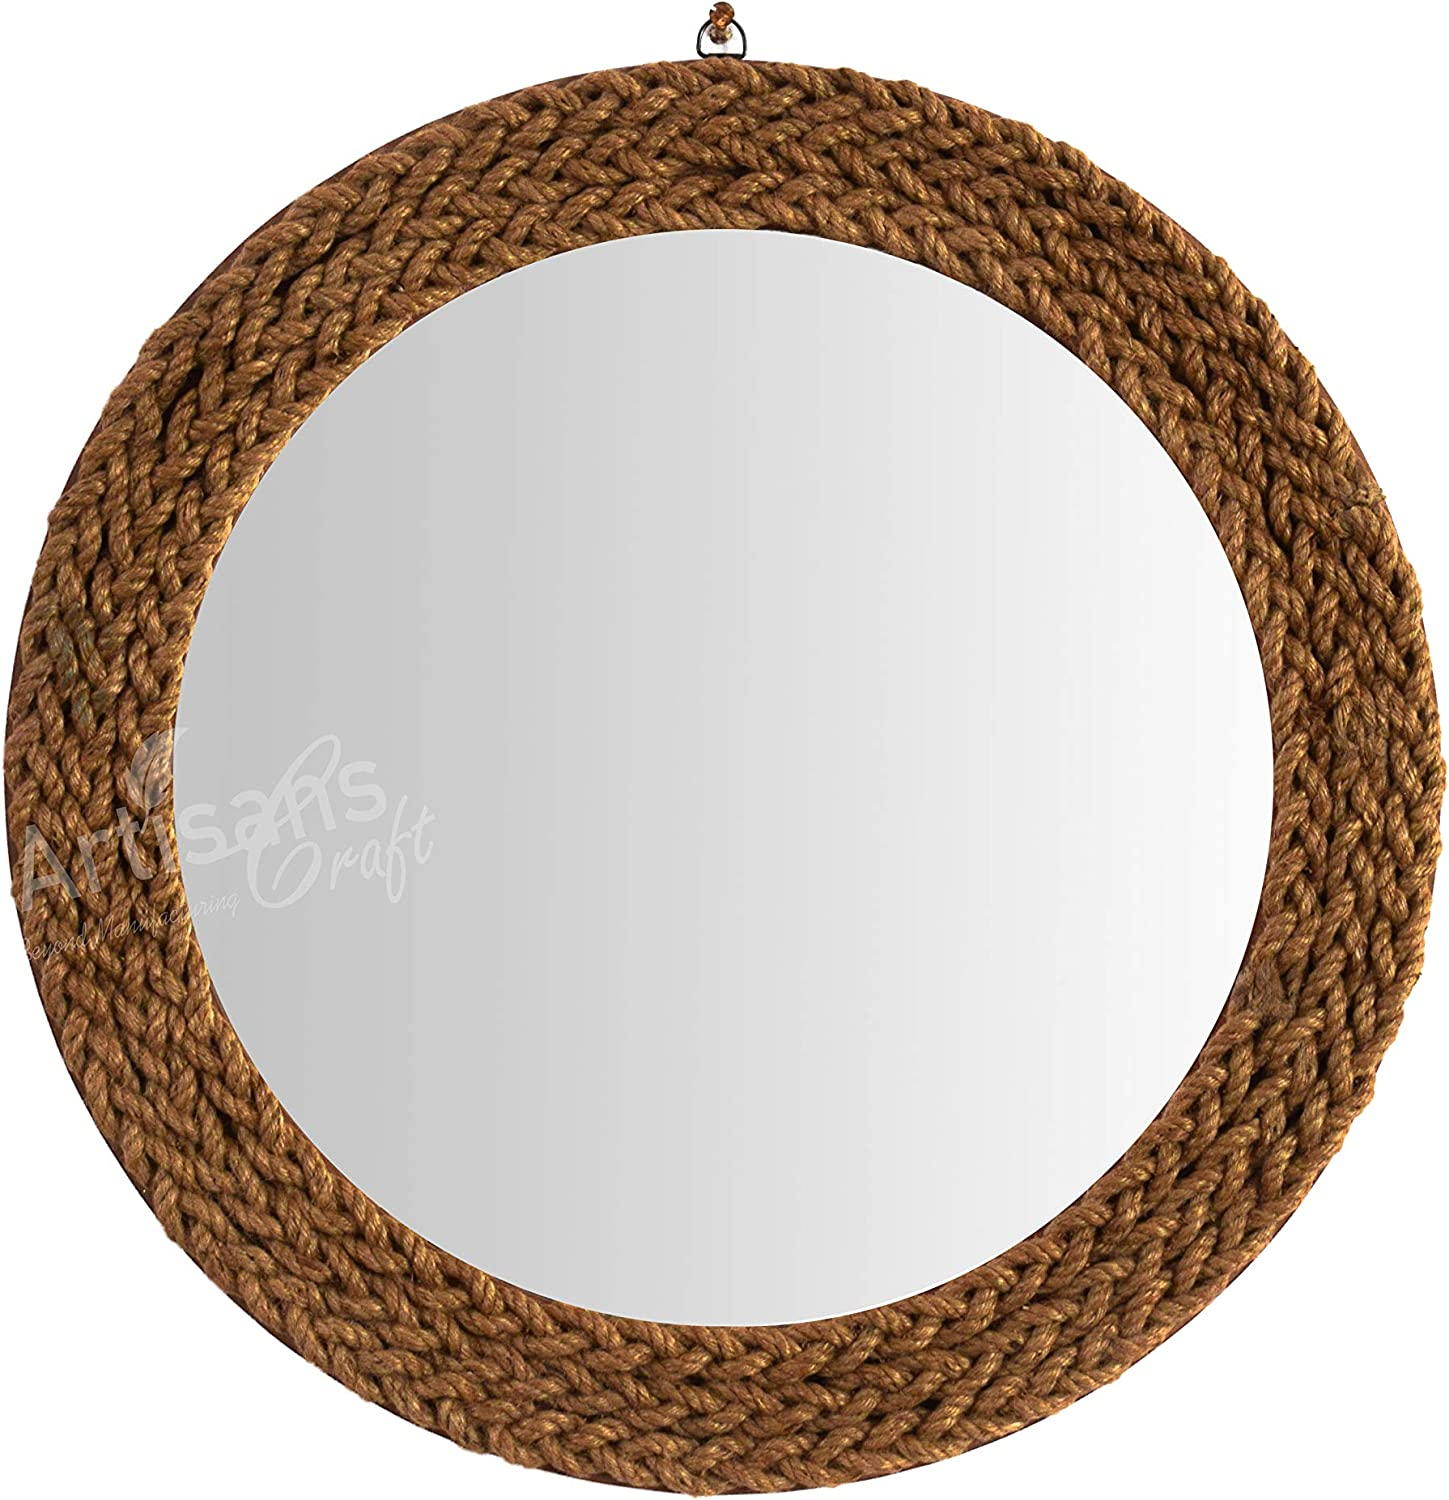 ARTISANS CRAFT - Handmade Nautical Decor Wall Mirror Affordable Wall Hangings (24 x 24, Without Loop)